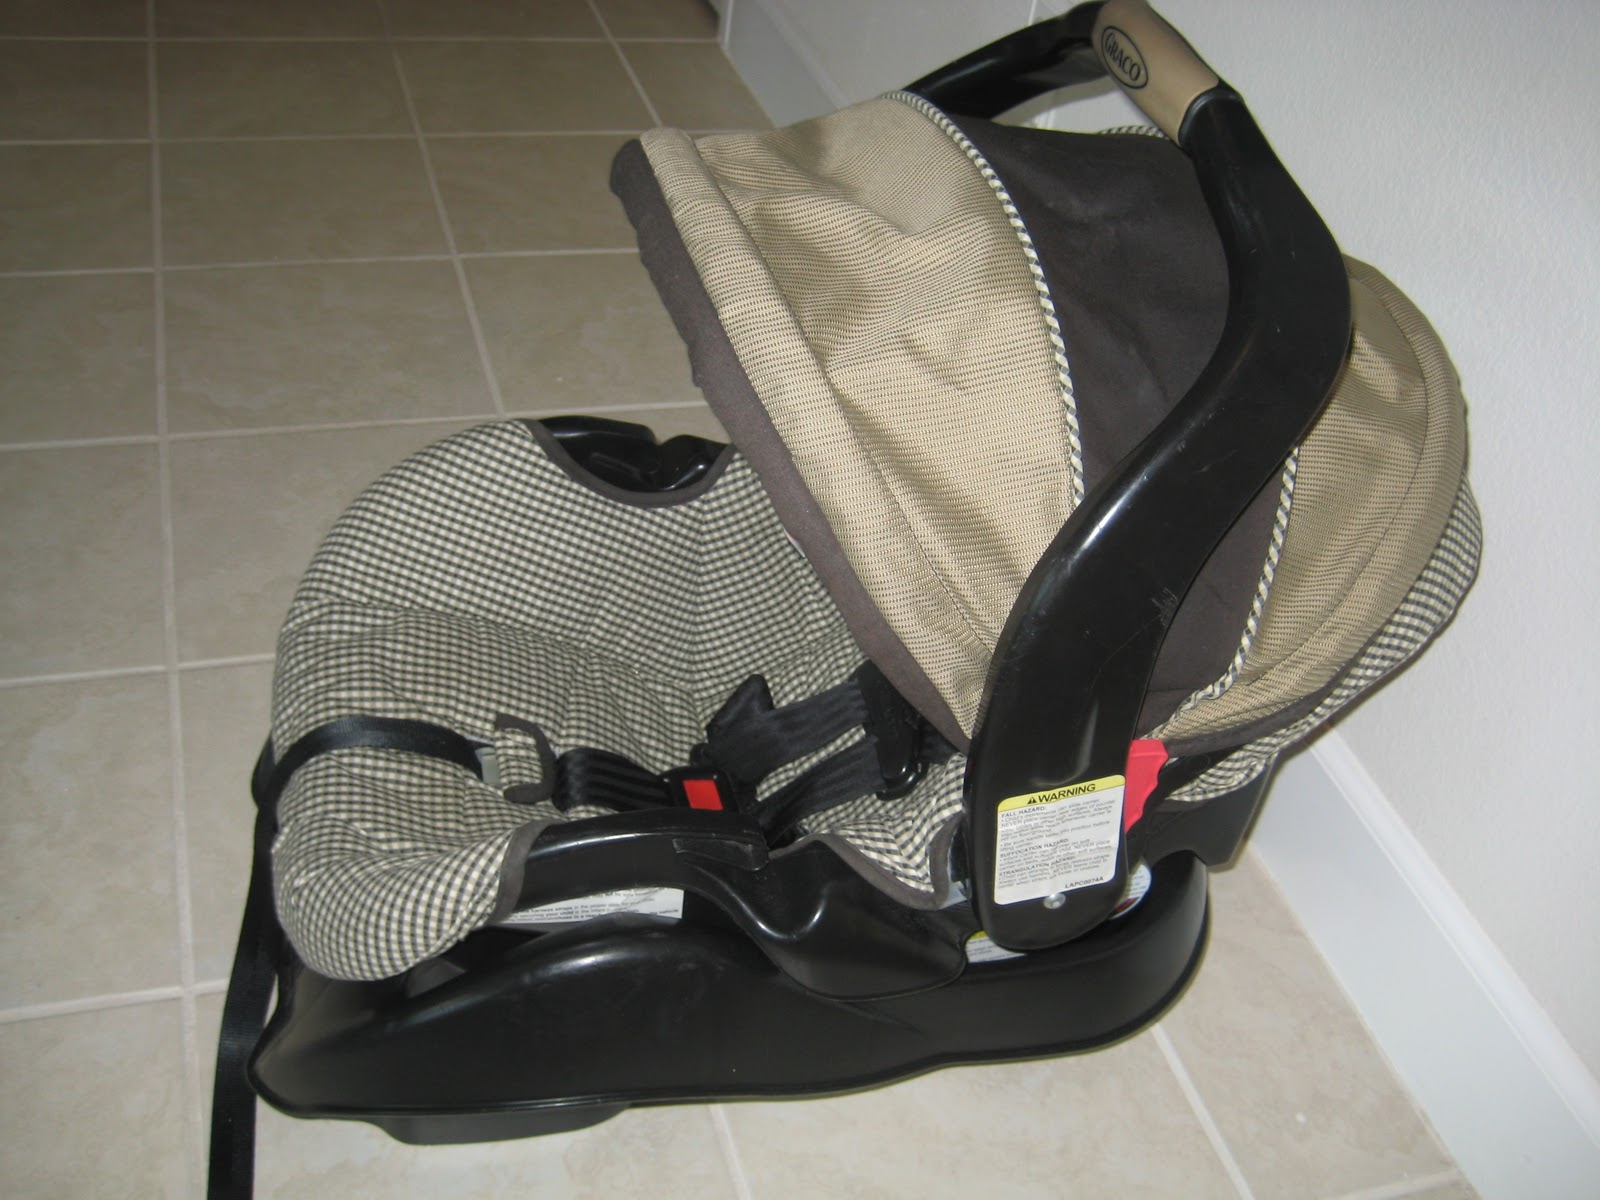 Graco SnugRider Elite Infant Car Seat Frame Stroller